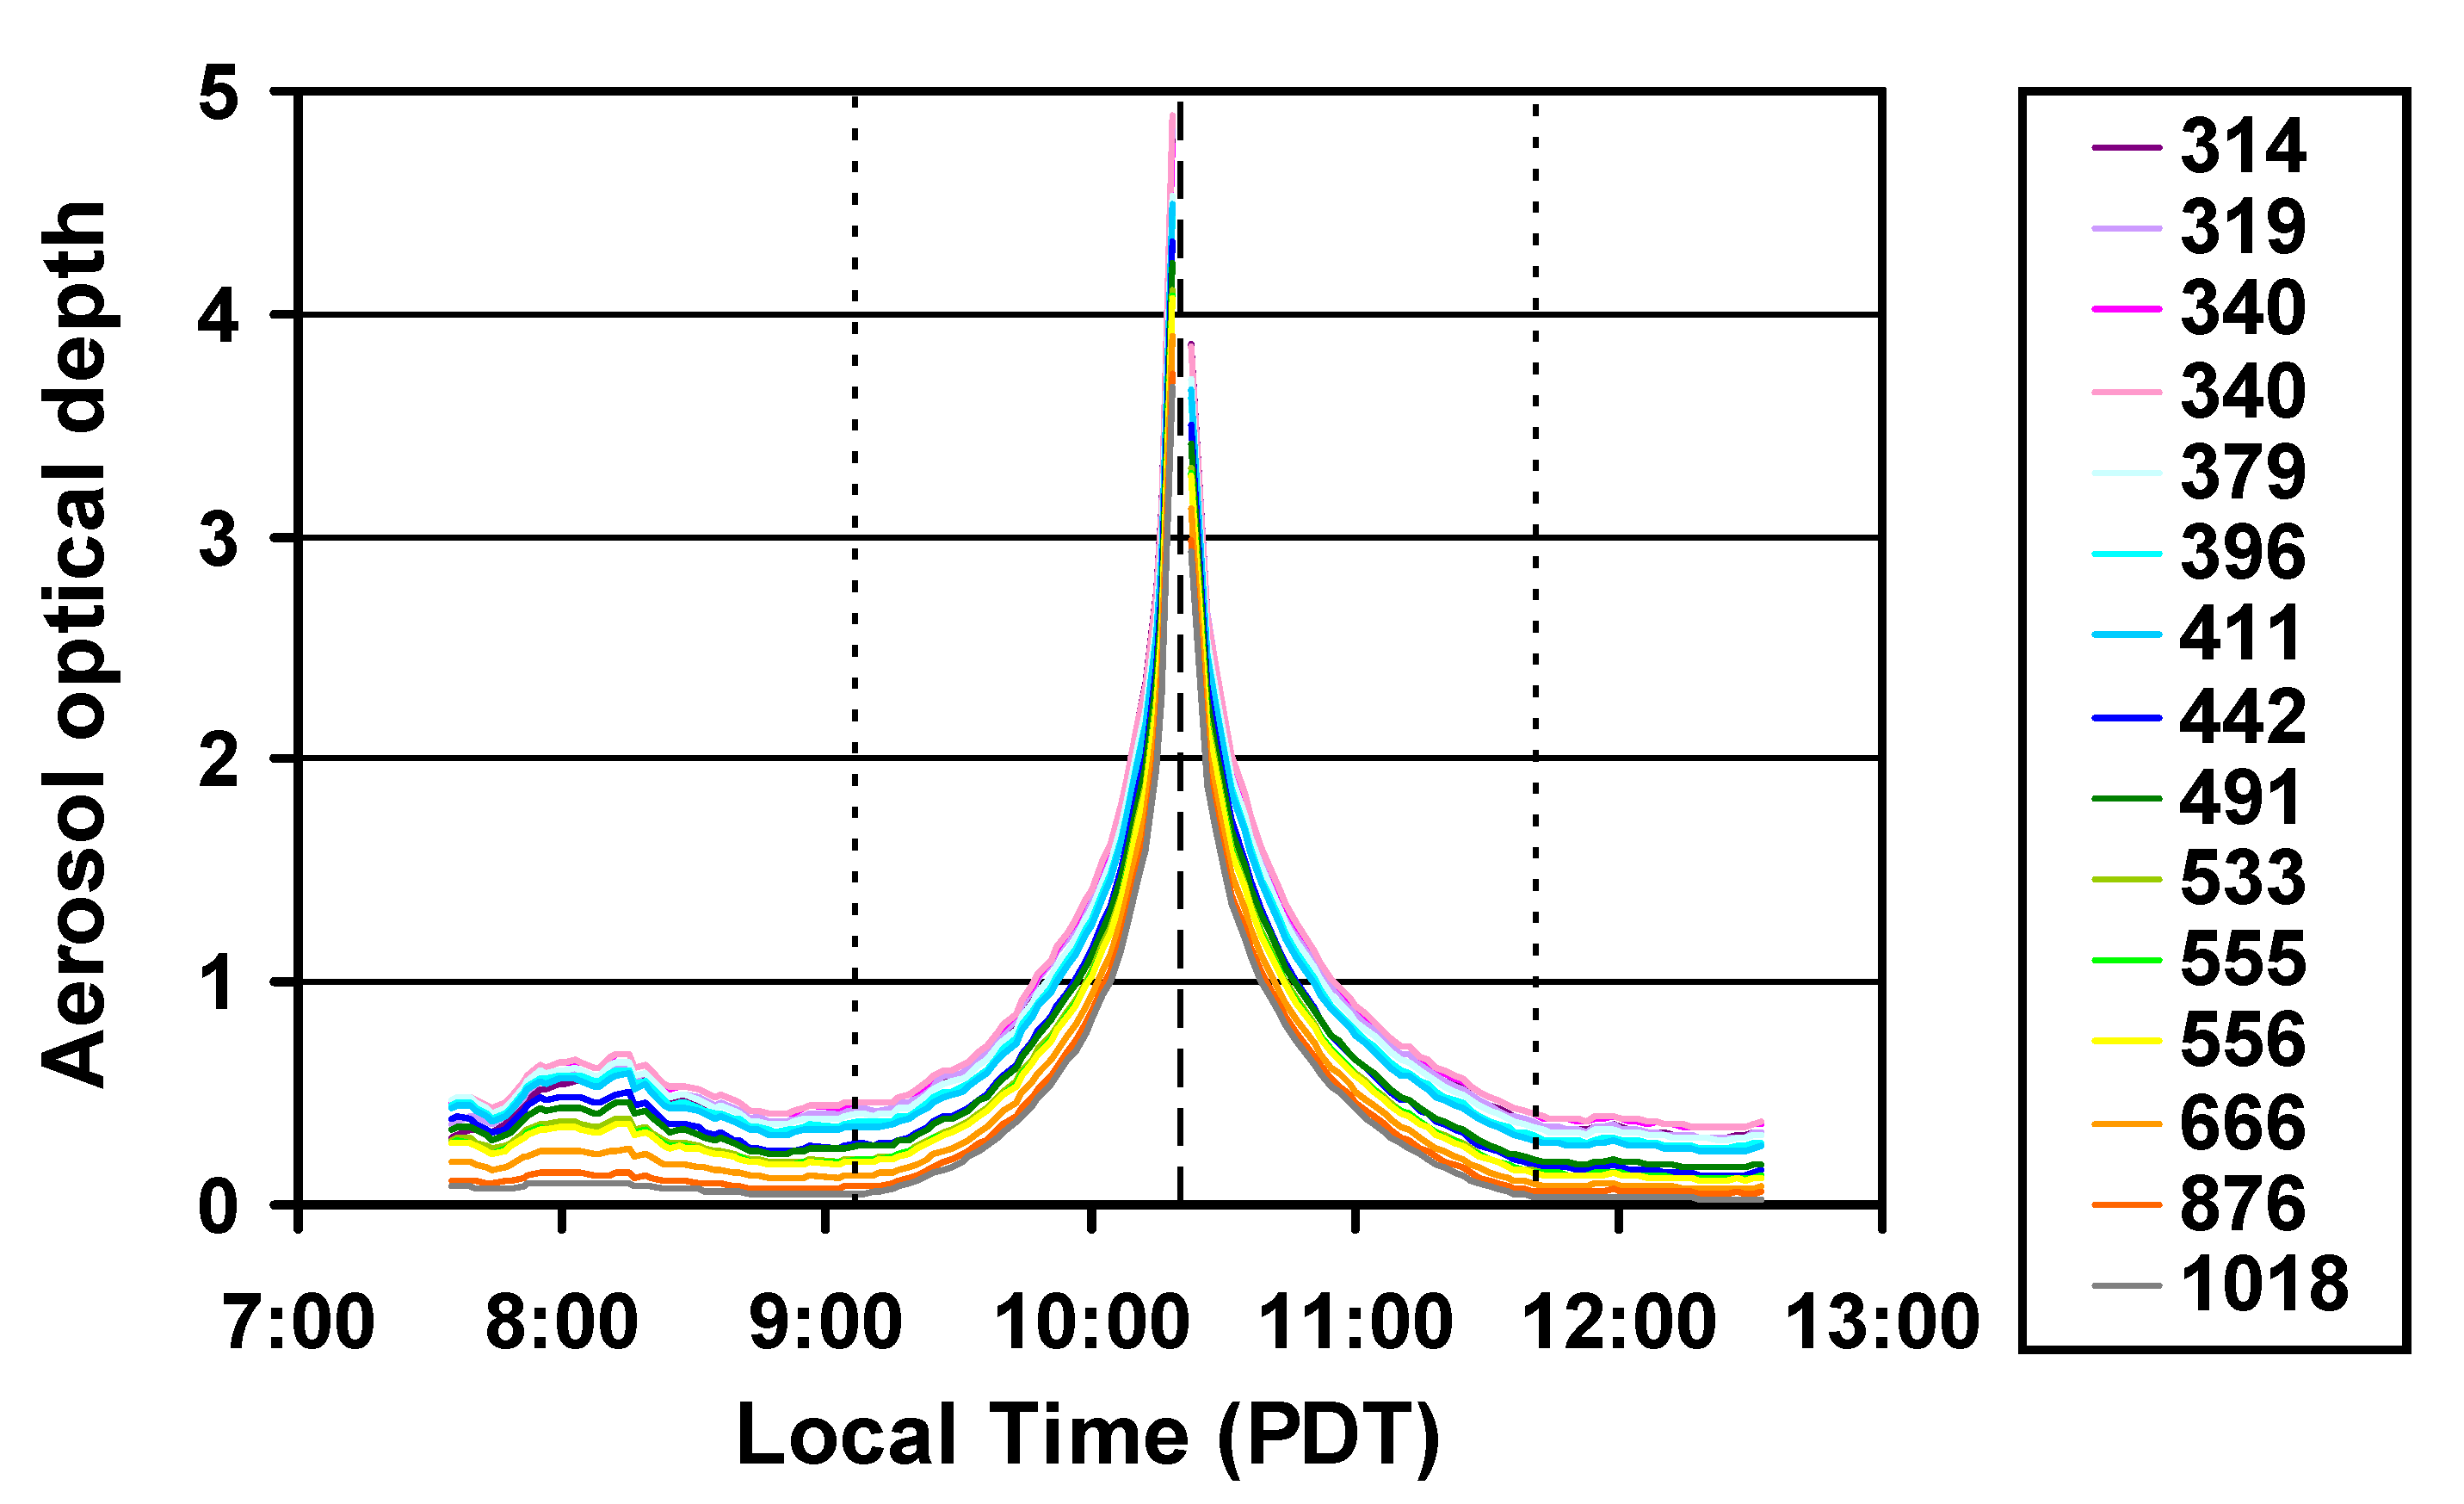 Fig 6: Aerosol optical depth calculated from direct spectral measurements extraced from shadowband data.